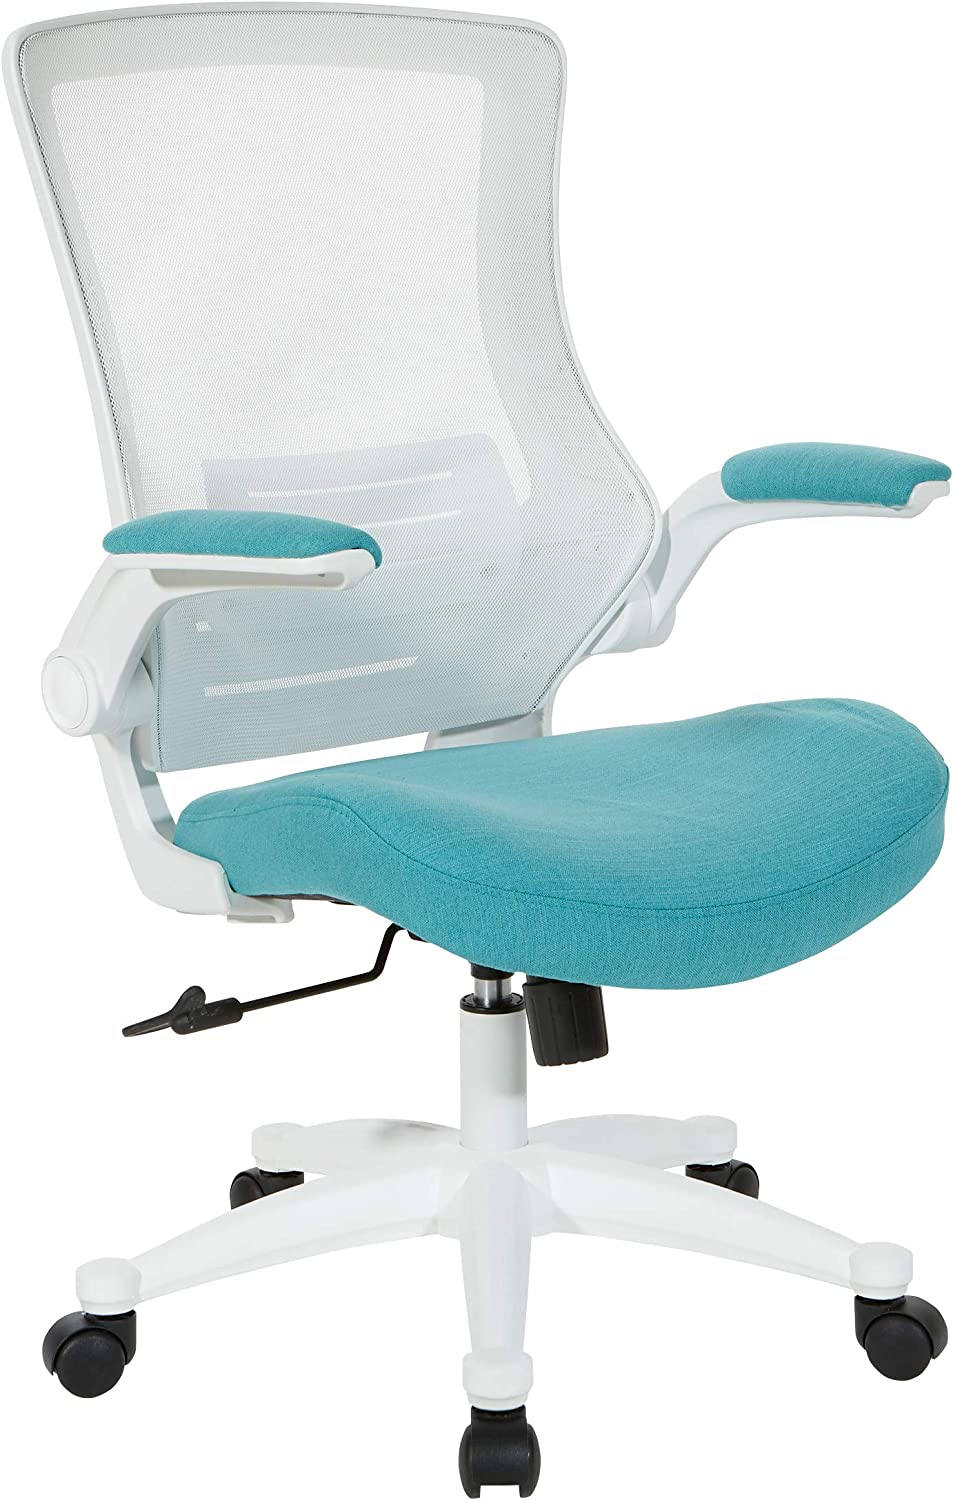 Office Star White Screen Back Manager's Chair, Linen Turquoise